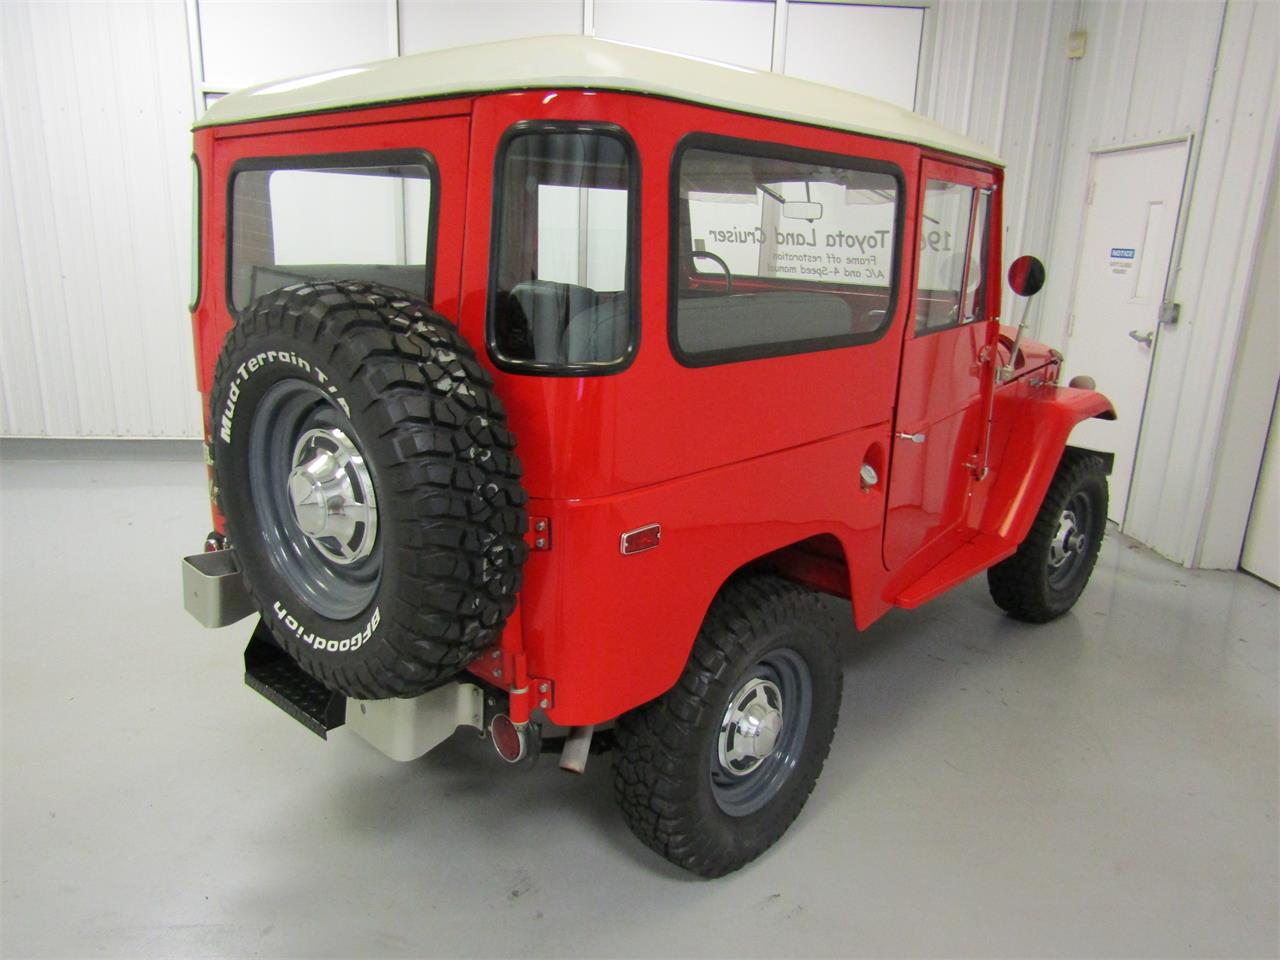 1969 toyota land cruiser fj for sale classiccars com cc 1183804large picture of classic 1969 toyota land cruiser fj $49,991 00 offered by duncan imports \u0026